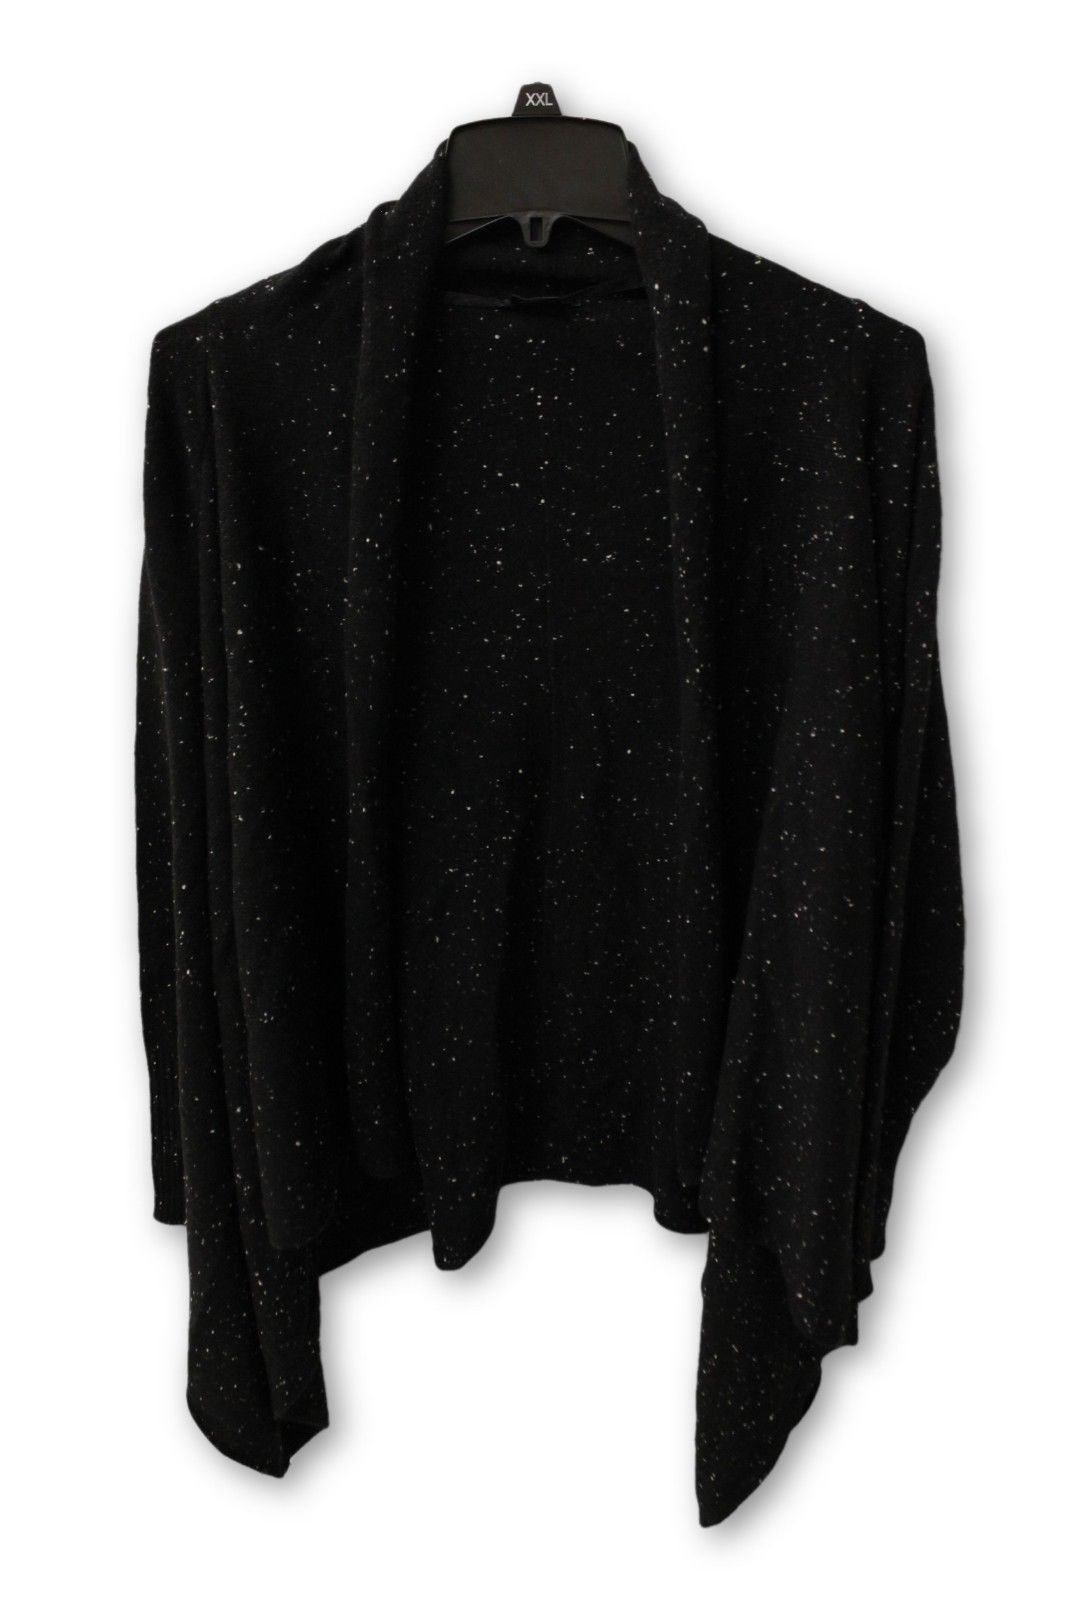 C by Bloomingdale's Women's Cashmere - Black Cardigan Sweater M NWT